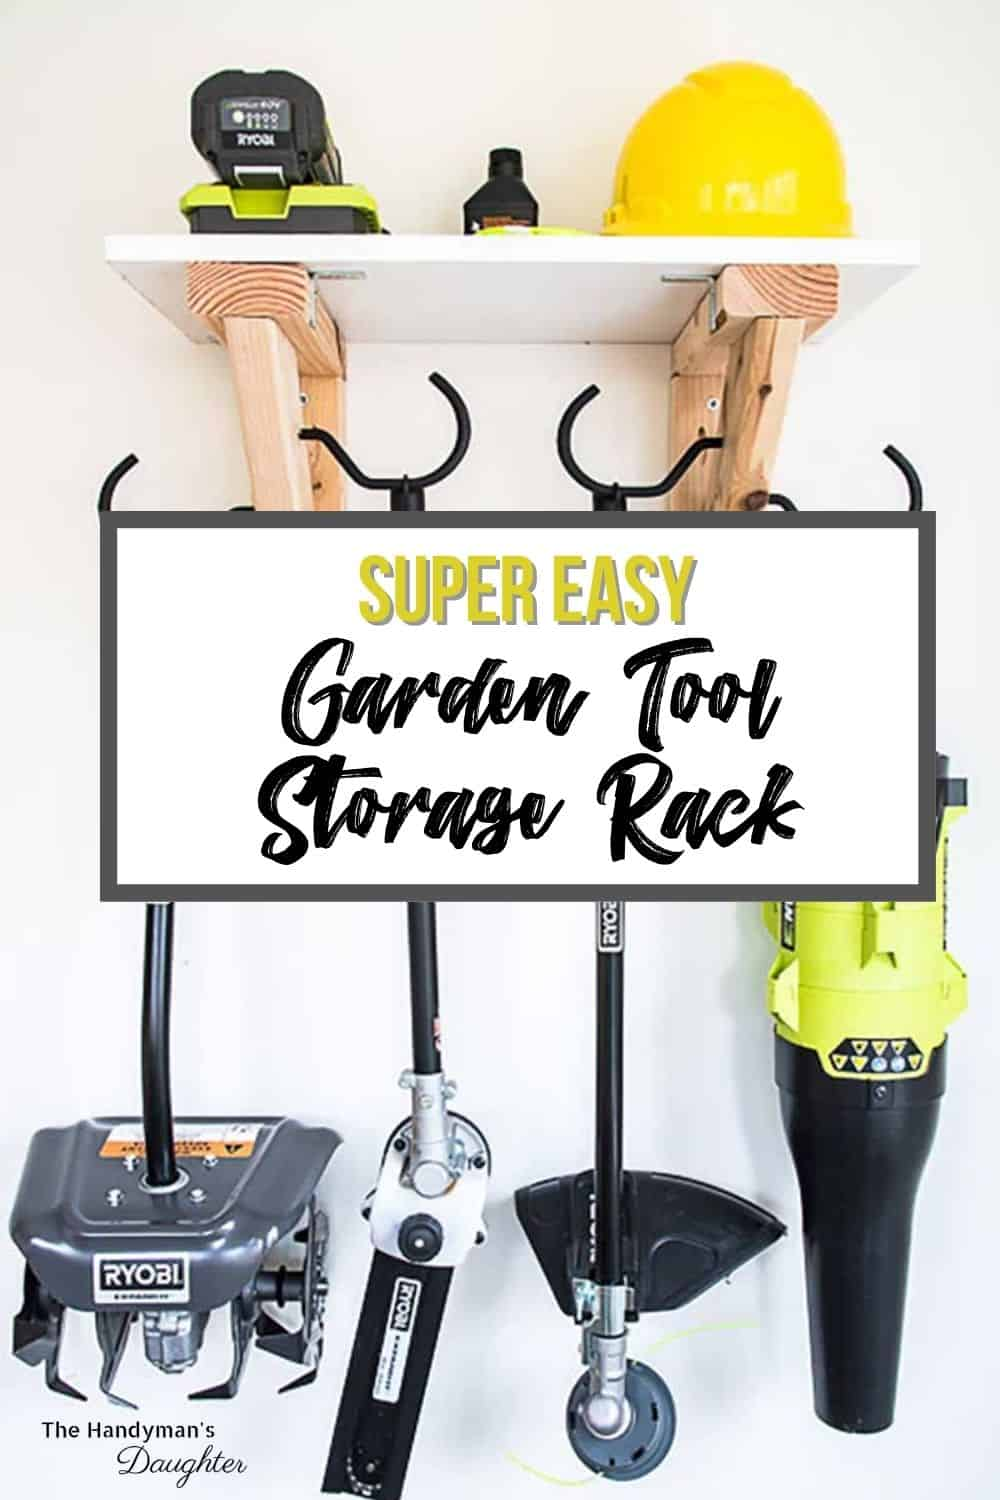 image of completed garden tool storage rack with tools and text Super Easy Garden Tool Storage Rack